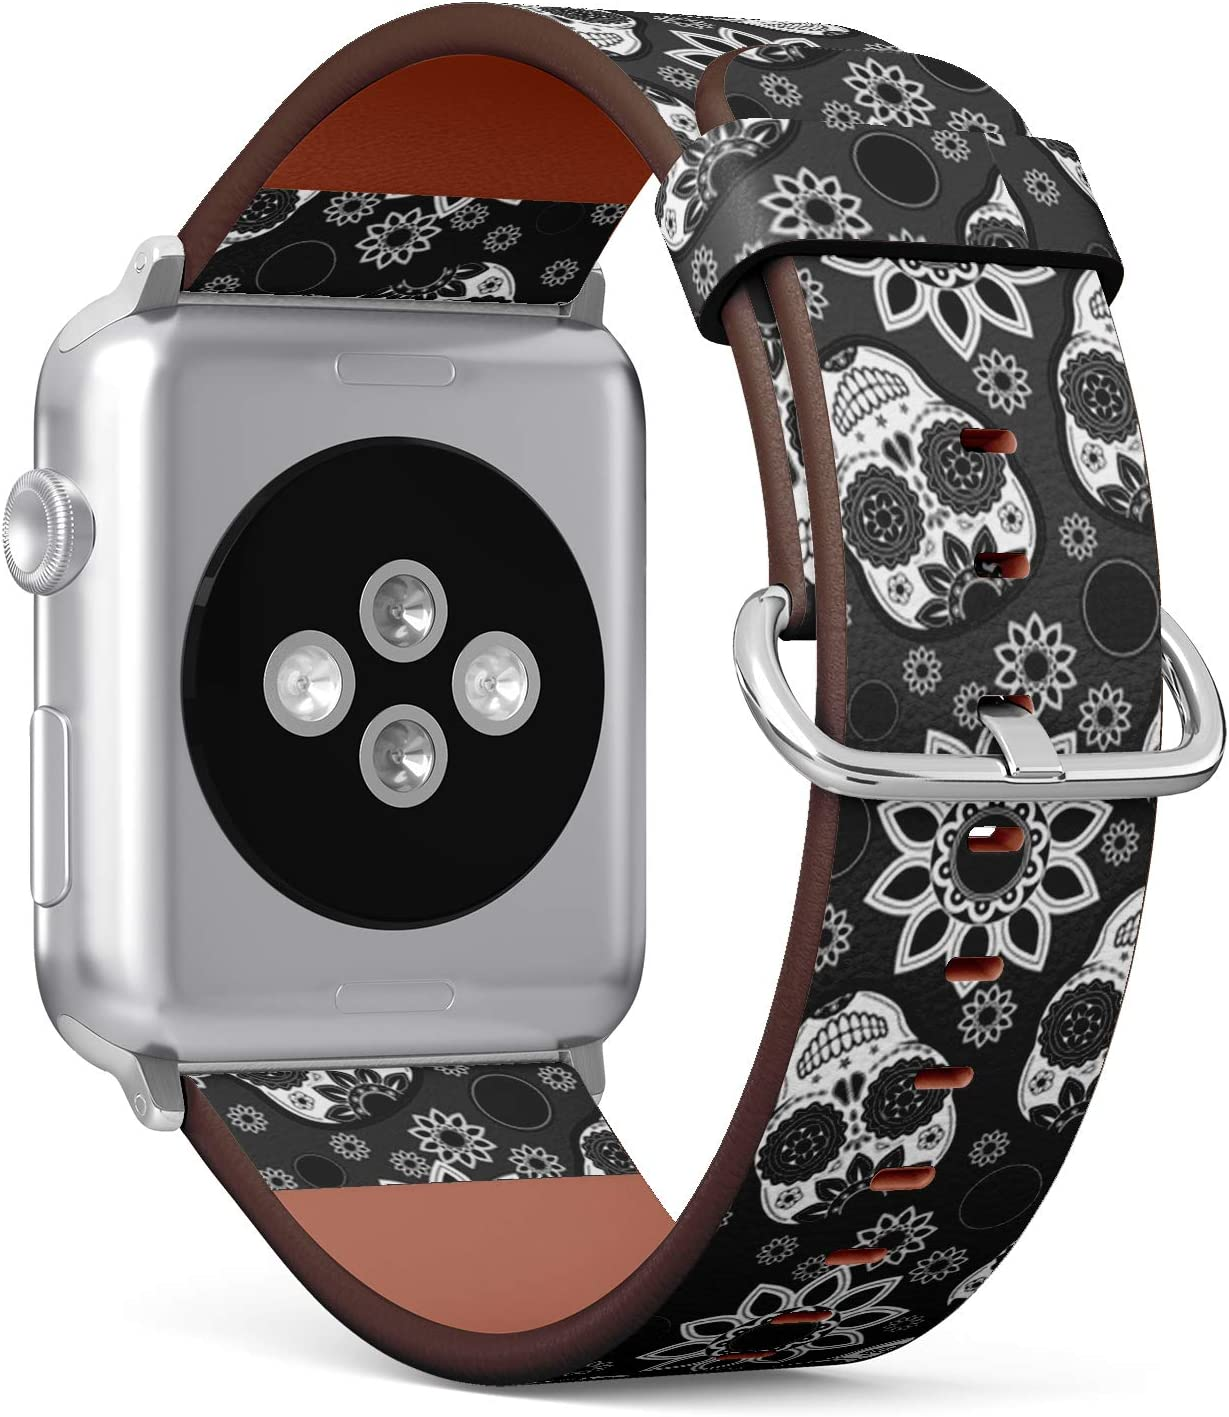 Compatible with Big Apple Watch 42mm & 44mm (All Series) Leather Watch Wrist Band Strap Bracelet with Stainless Steel Clasp and Adapters (Sugar Skull)